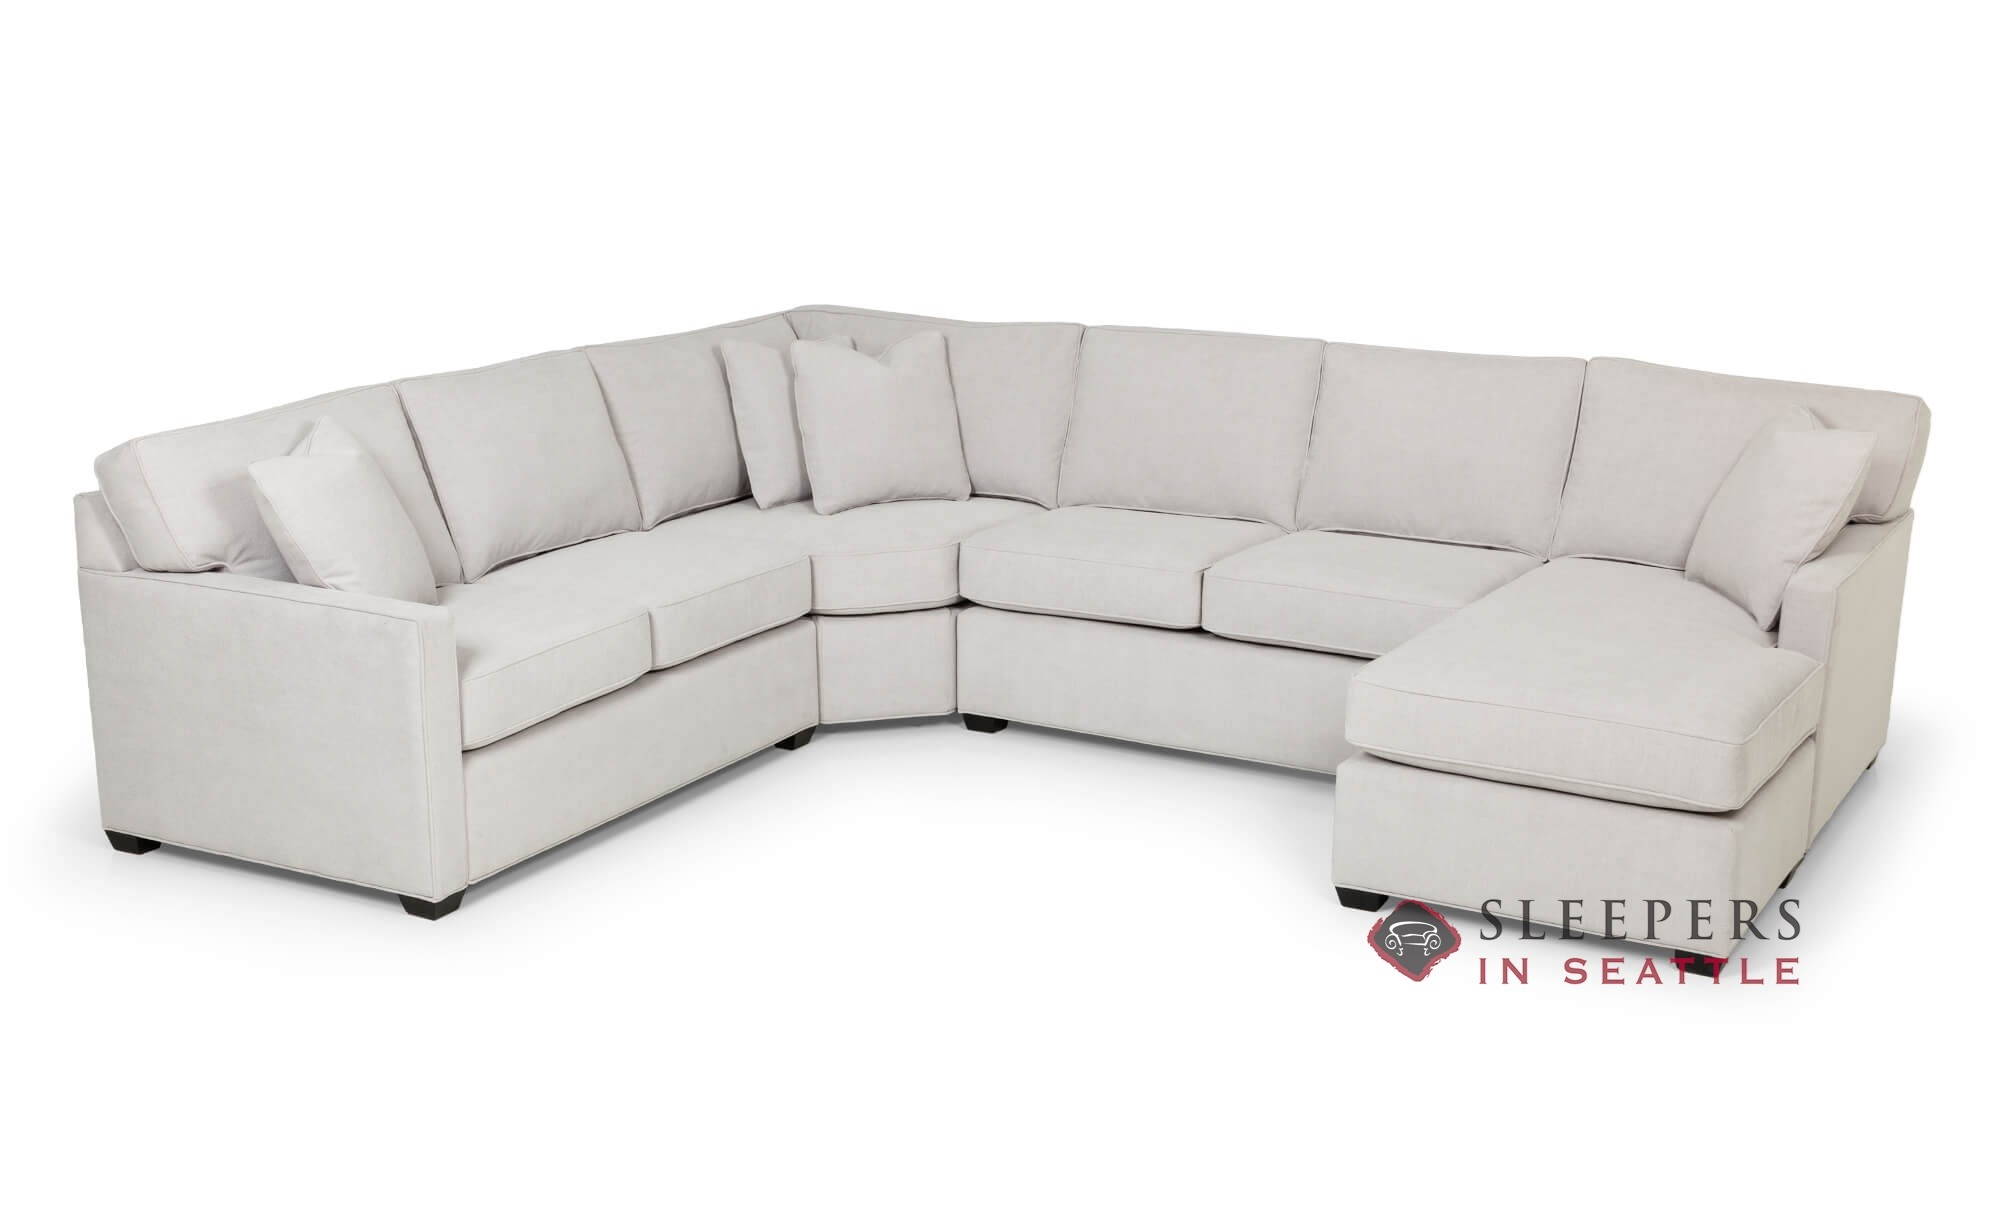 The Stanton 387 U Shape Sectional Queen Sleeper Sofa